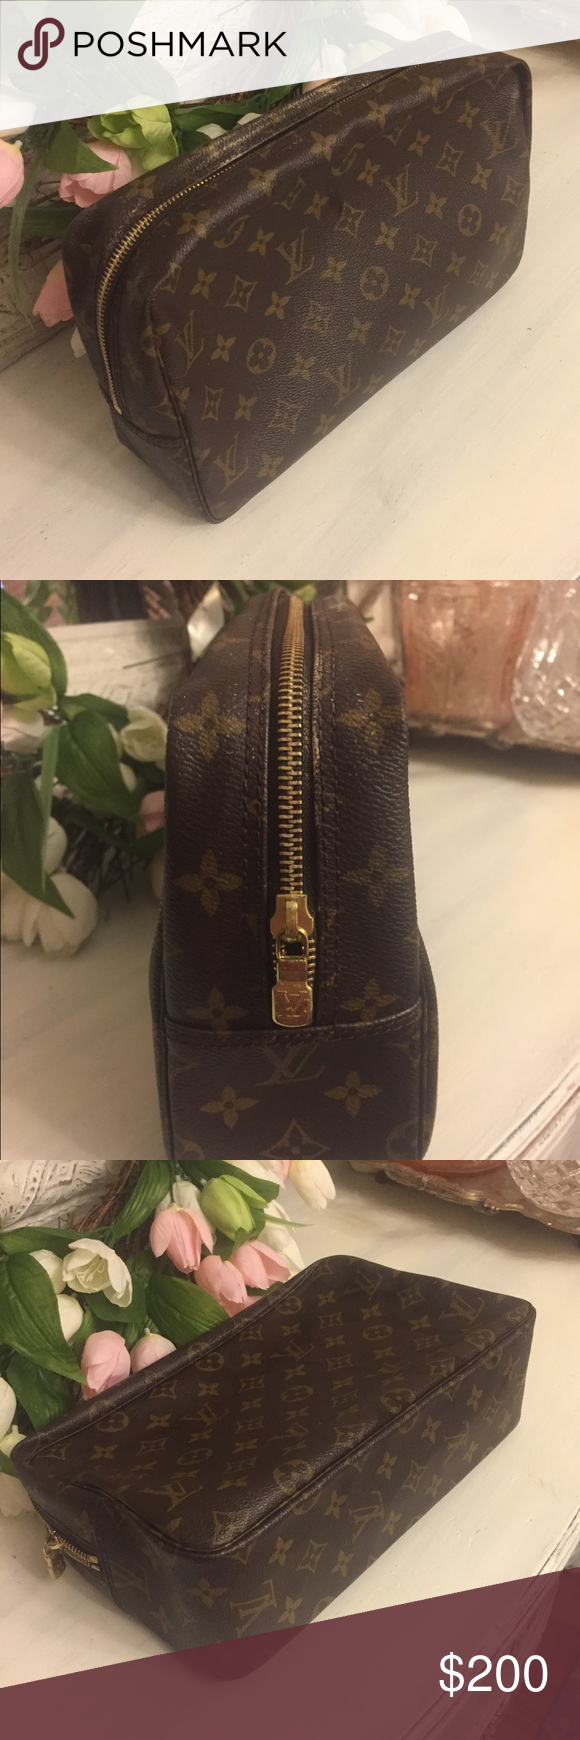 💯 authentic Louis Vuitton Trousse 28 cosmetic bag AS IS PLEASE READ: gorgeous bag, but interior at top of Pouch is sticky. It's the leather itself that has become sticky over time. This is common in many vintage LV bags and typically requires the lining be replaced. The stickiness has caused some spotting on top of bag. See photos. Last pic is to show size ONLY. Last pic is not the bag being sold. Louis Vuitton Bags Cosmetic Bags & Cases